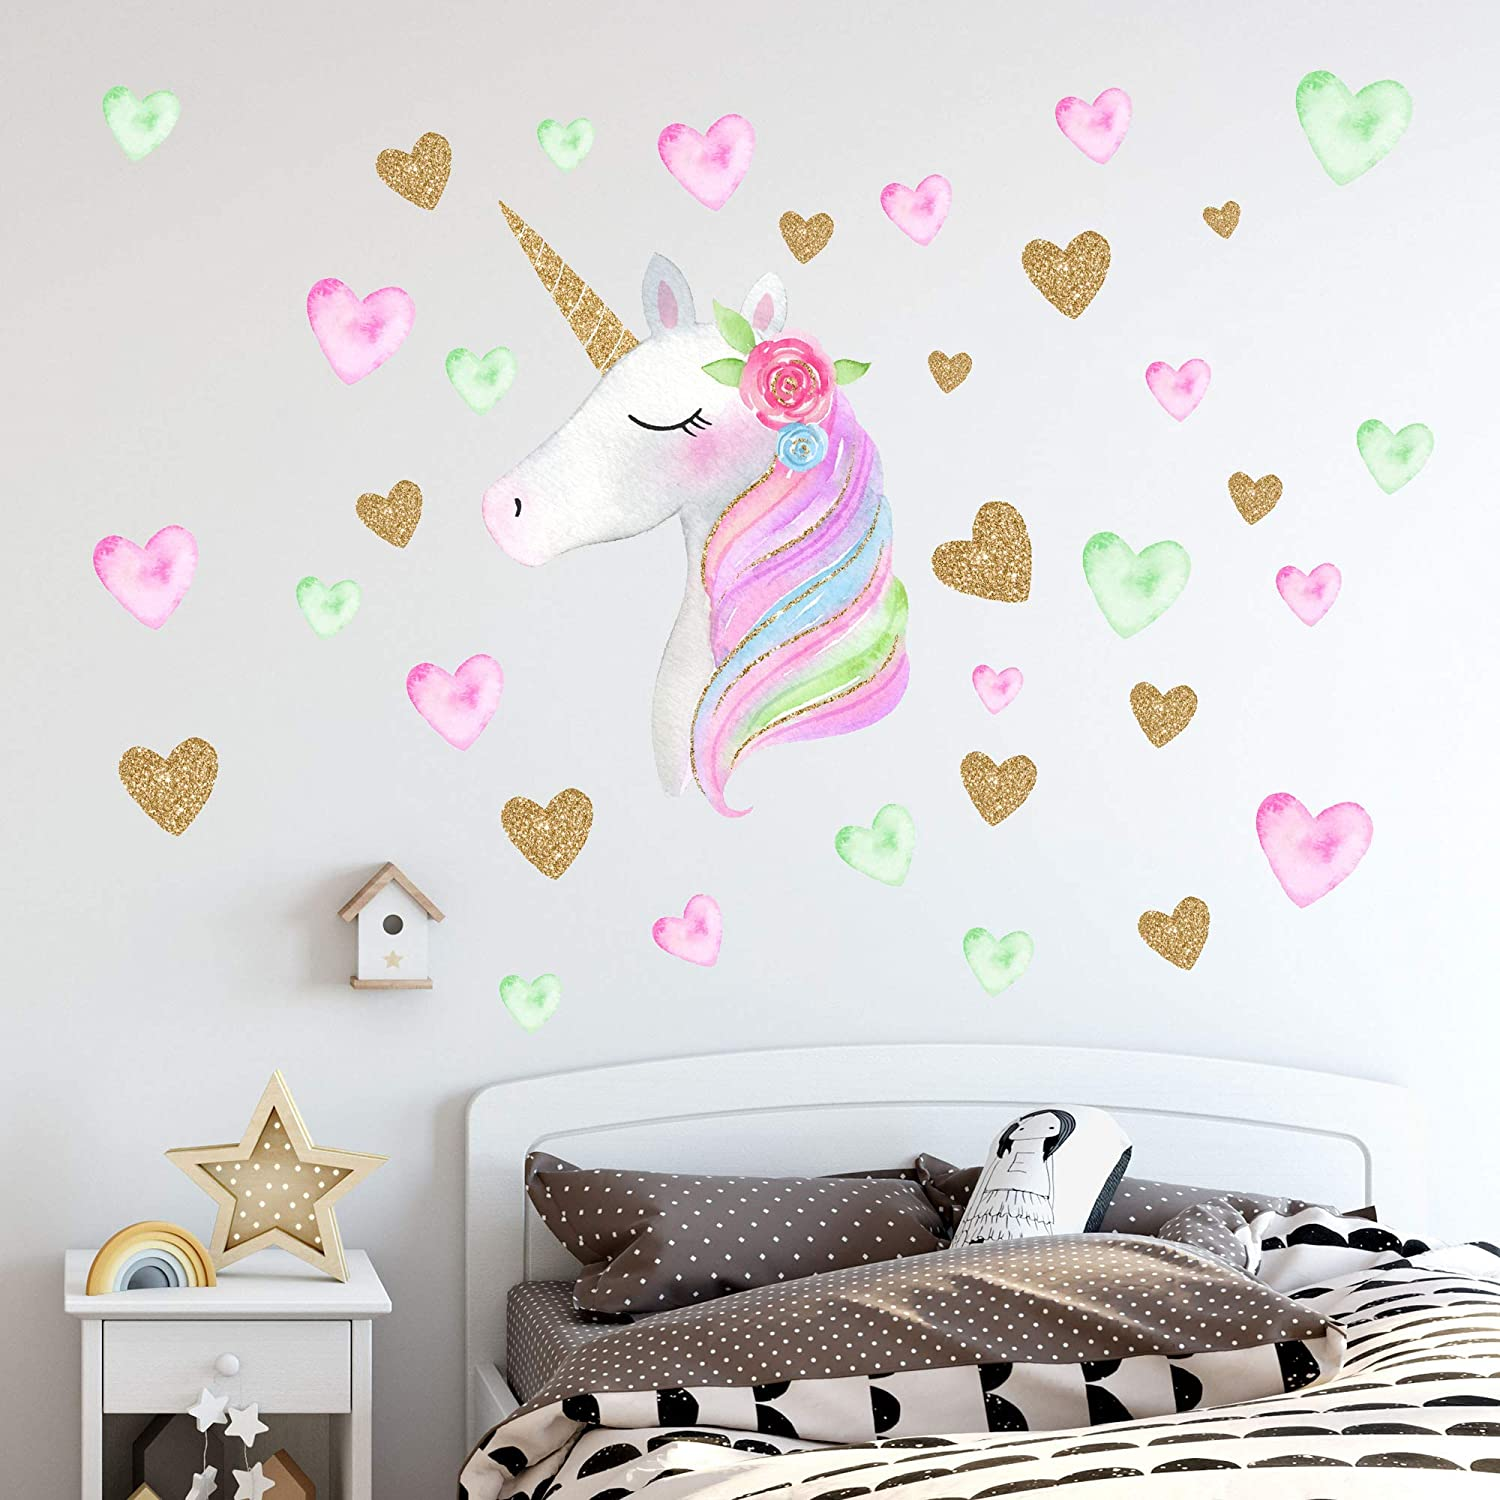 Unicorn Wall Decals,Unicorn Wall Sticker Decor with Heart Flower Birthday  Christmas Gifts for Boys Girls Kids Bedroom Decor Nursery Room Home Decor  ...